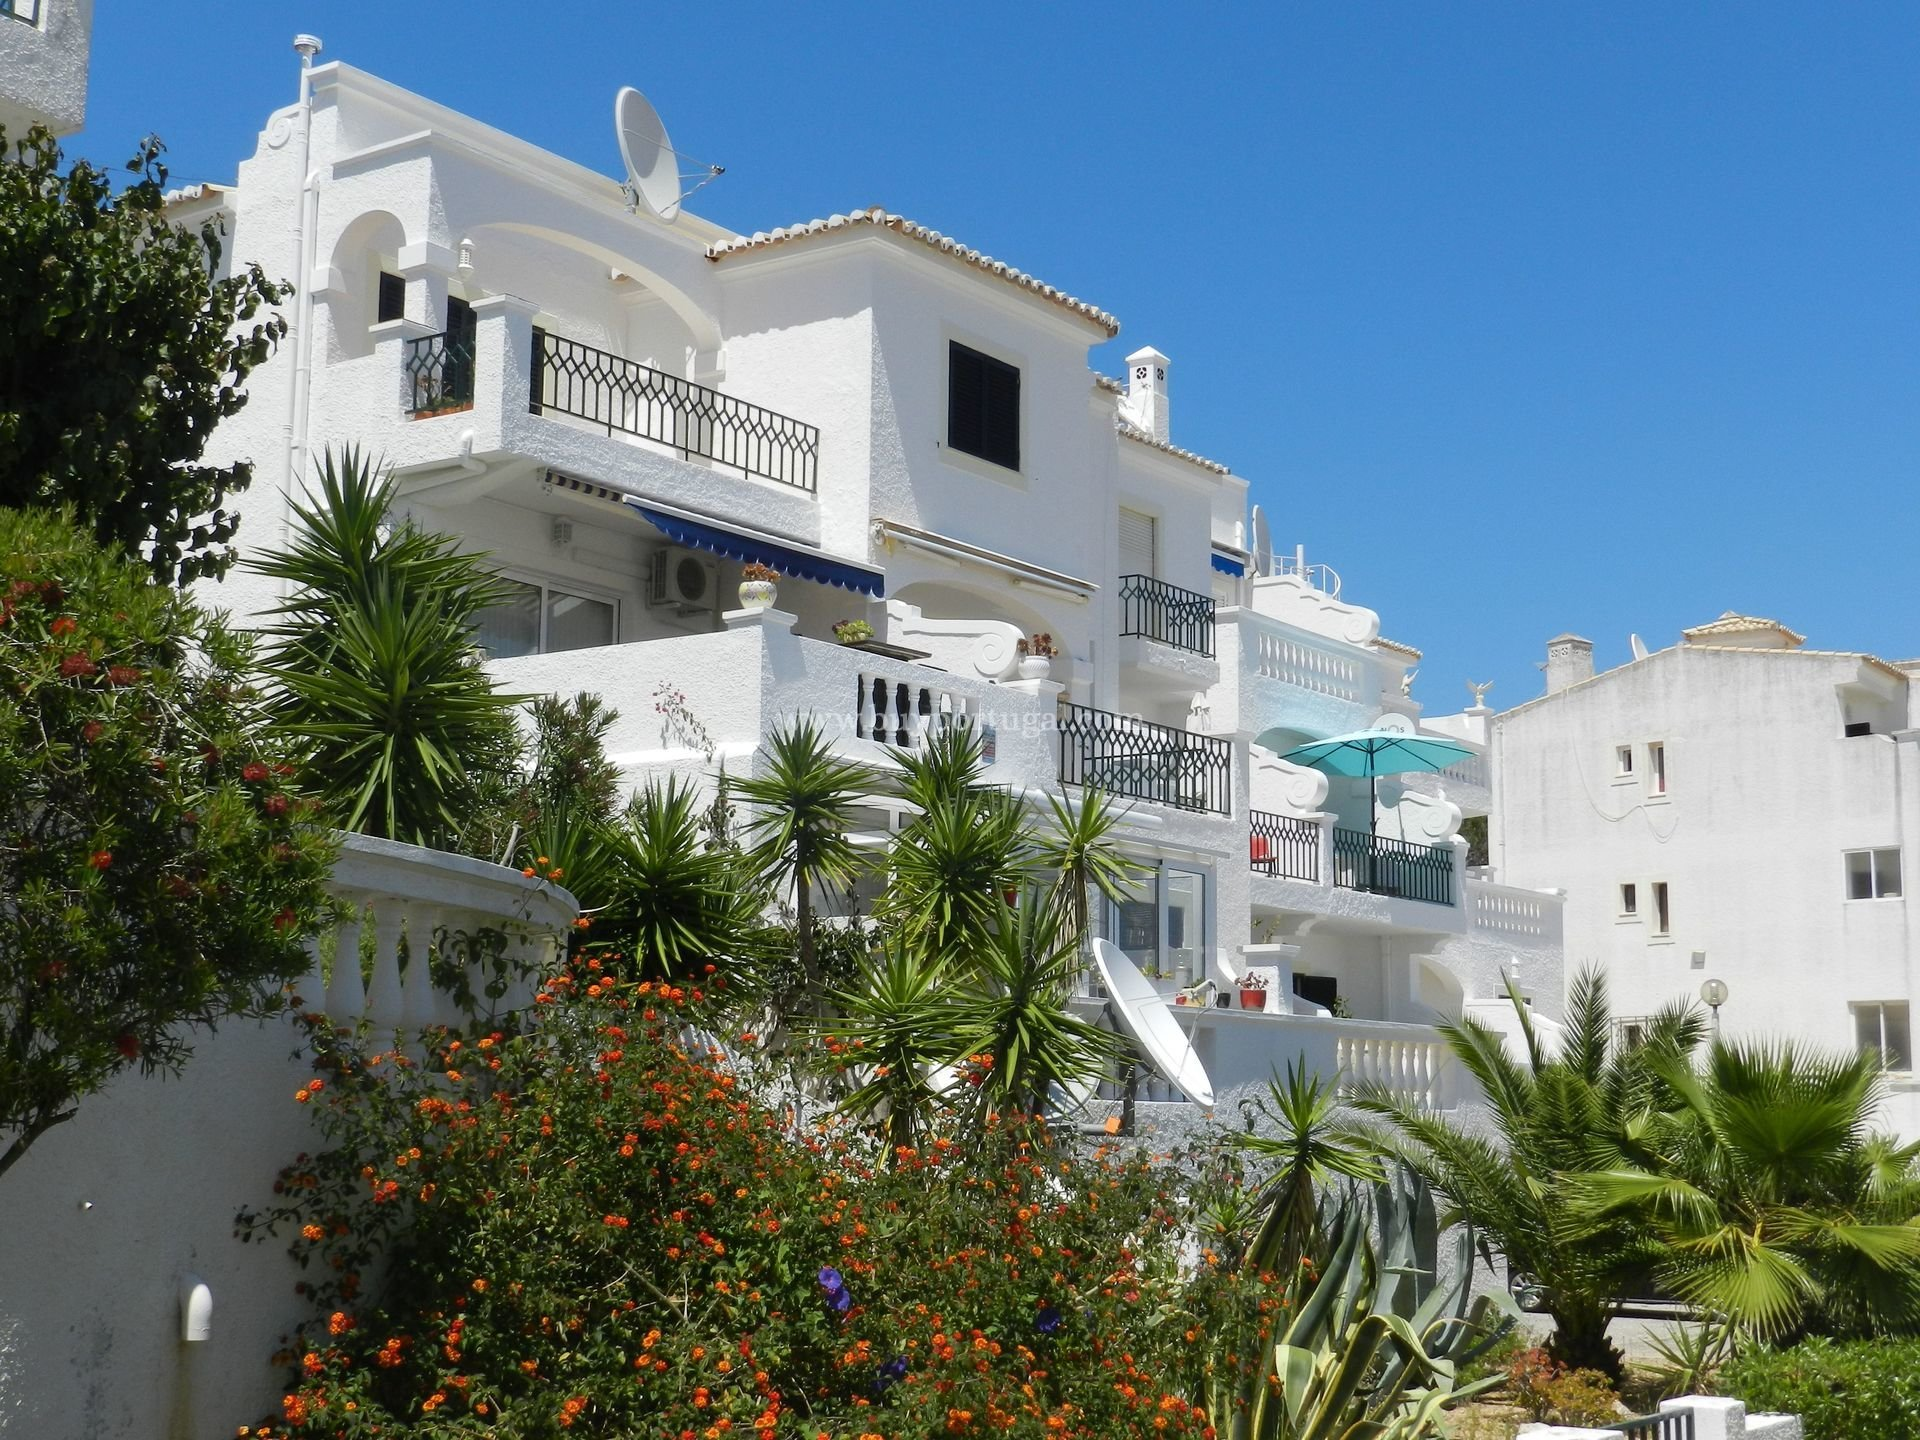 2 Bedroom Apartment Lagos, Western Algarve Ref: GA240